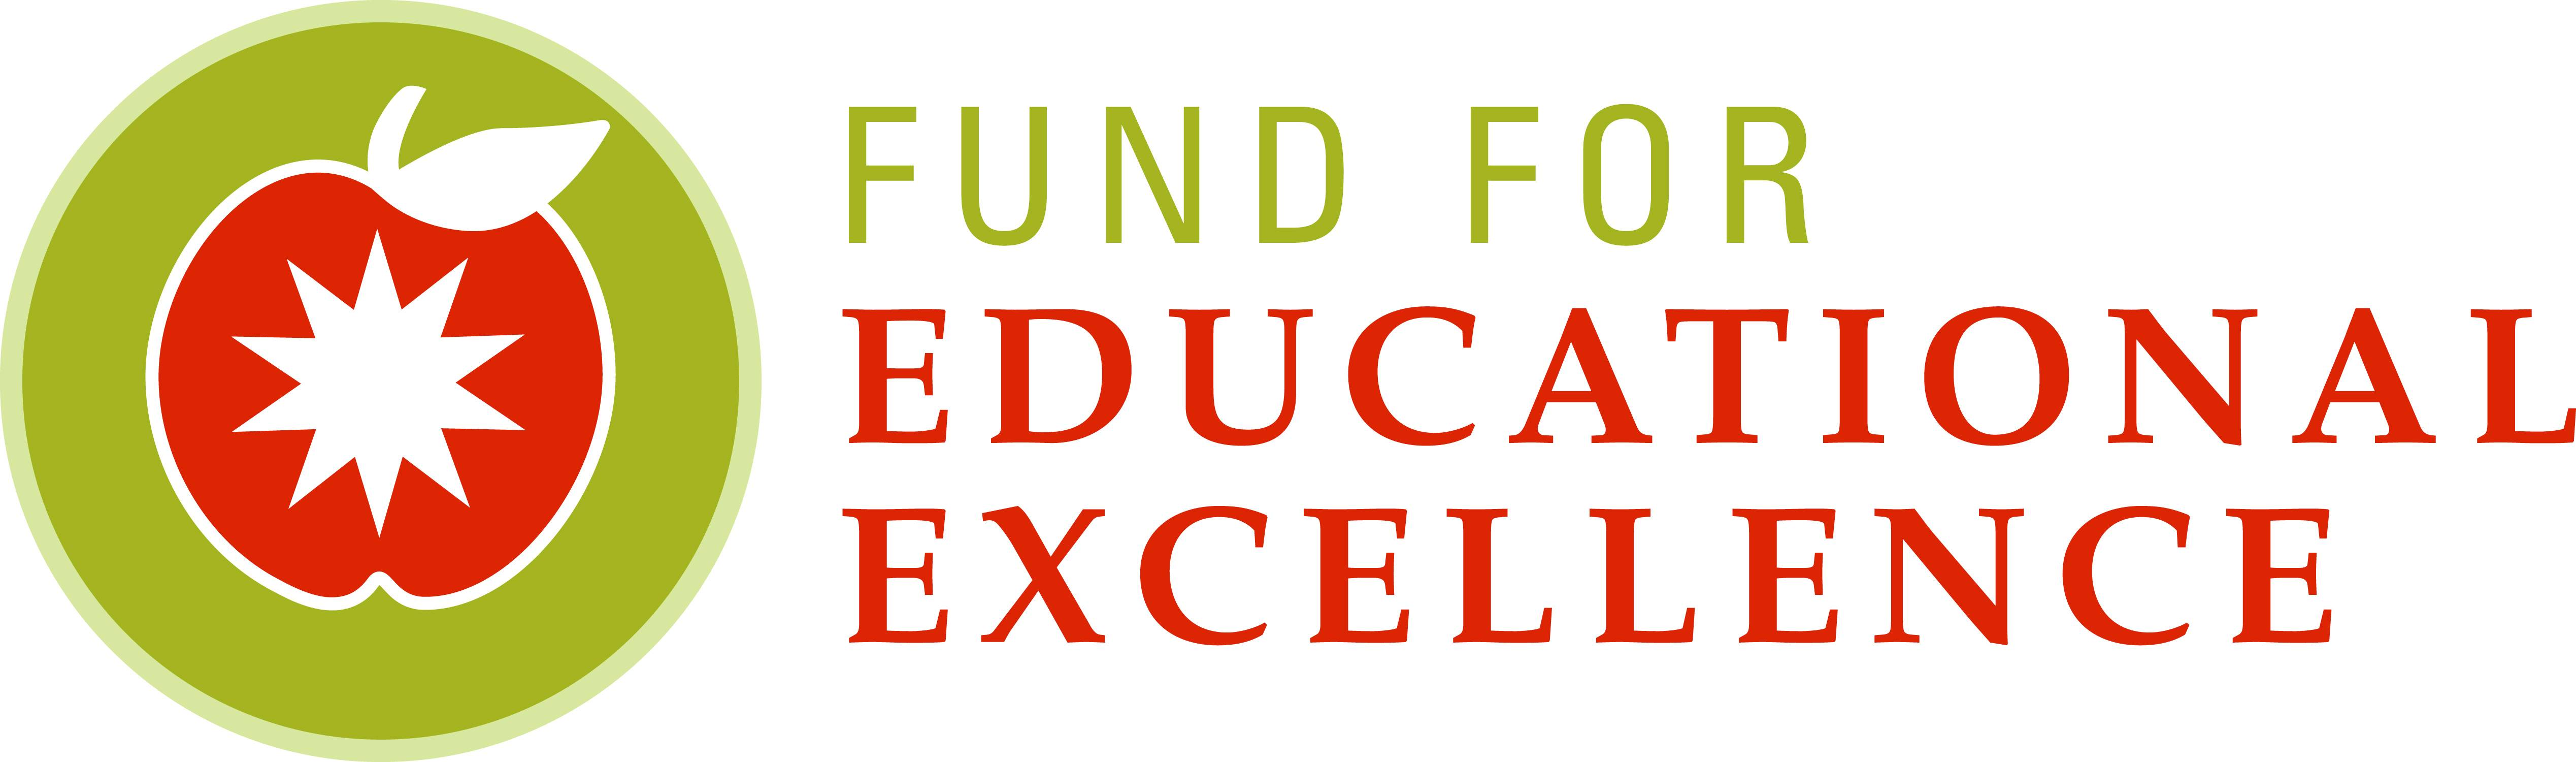 Logo of Fund for Educational Excellence